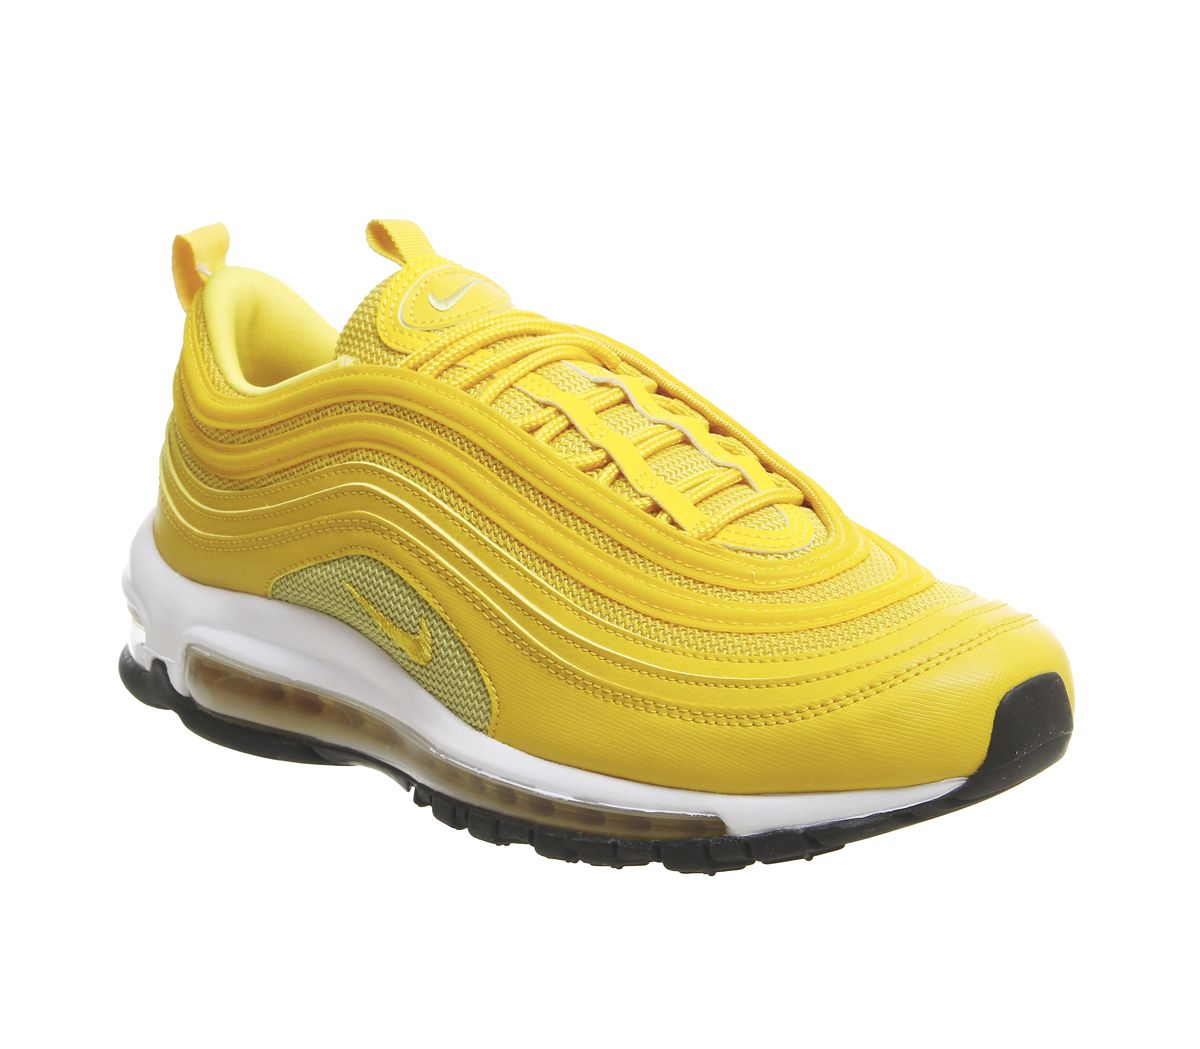 best website c41f1 3e03c Air Max 97 Trainers